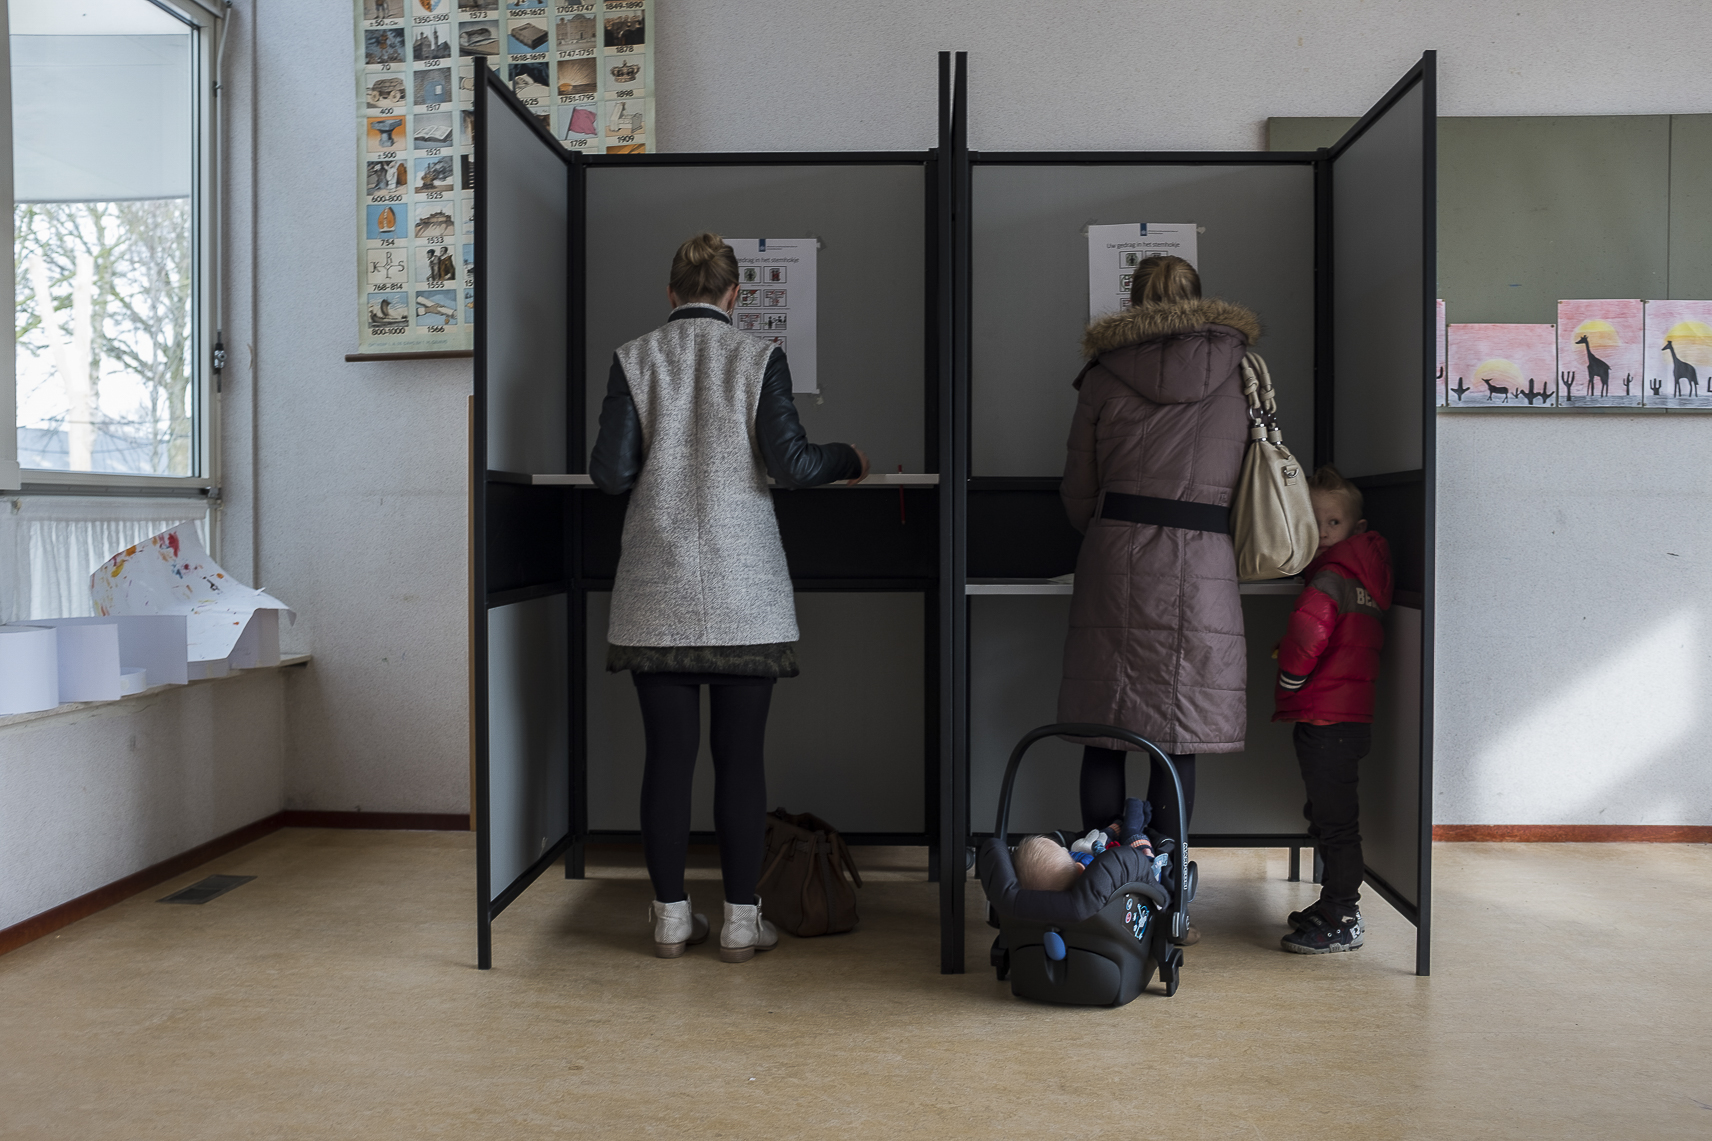 Women casts their ballots for the Dutch general elections at a polling station set up in a school in Staphorst, Netherlands, Wednesday, March 15, 2017.